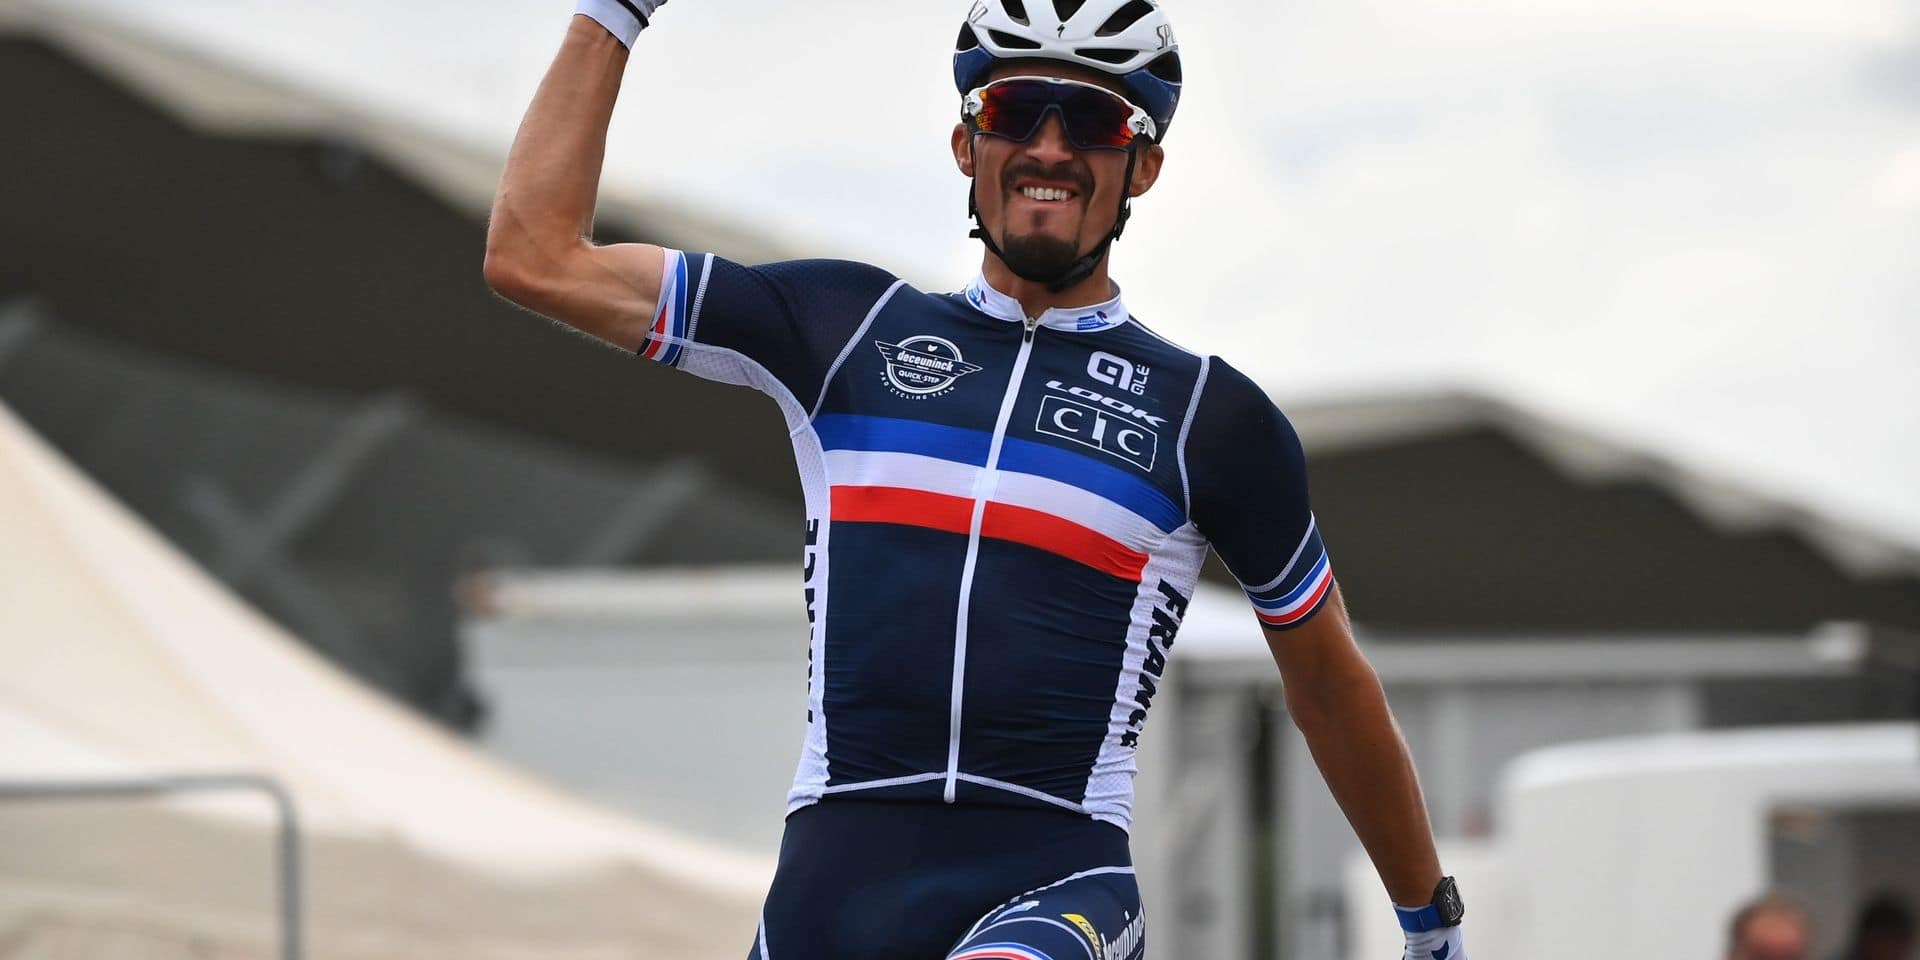 Julian Alaphilippe Champion Du Monde Quand On L Attend Le Moins Dh Les Sports